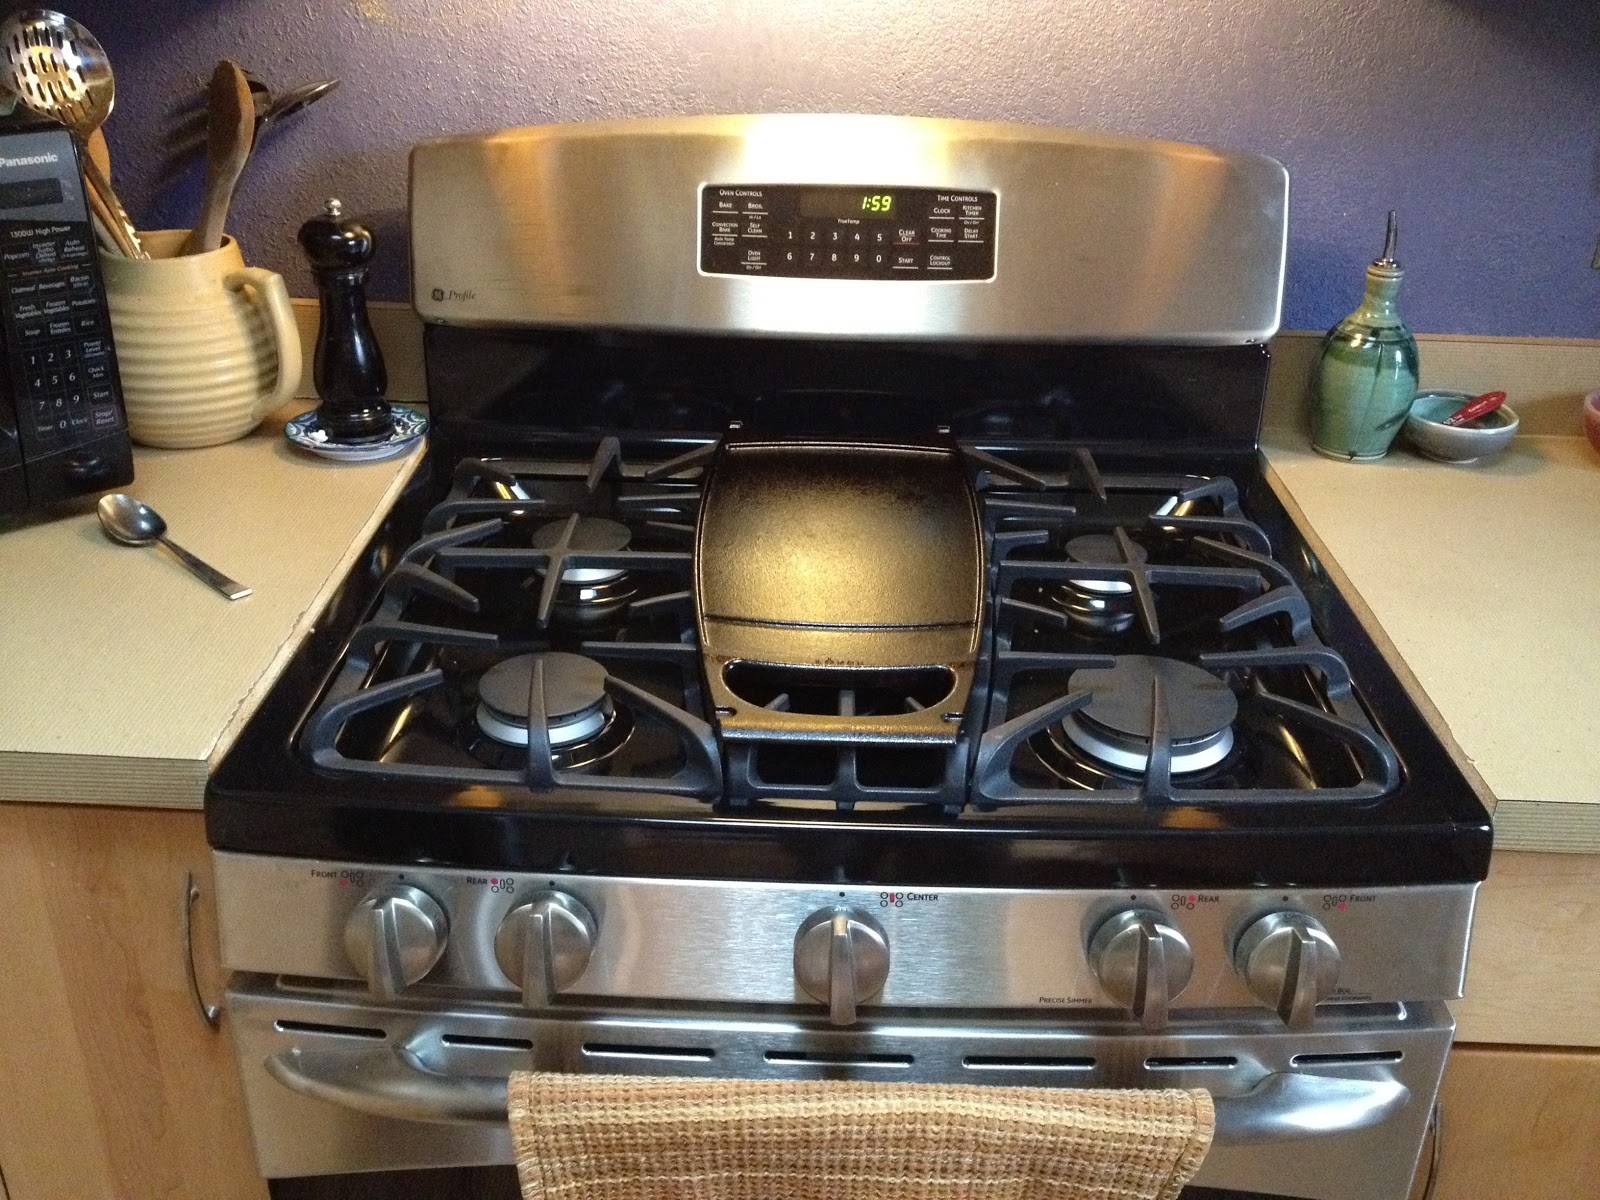 Stove With Griddle In The Middle ~ Derek on cast iron recipes article new ge